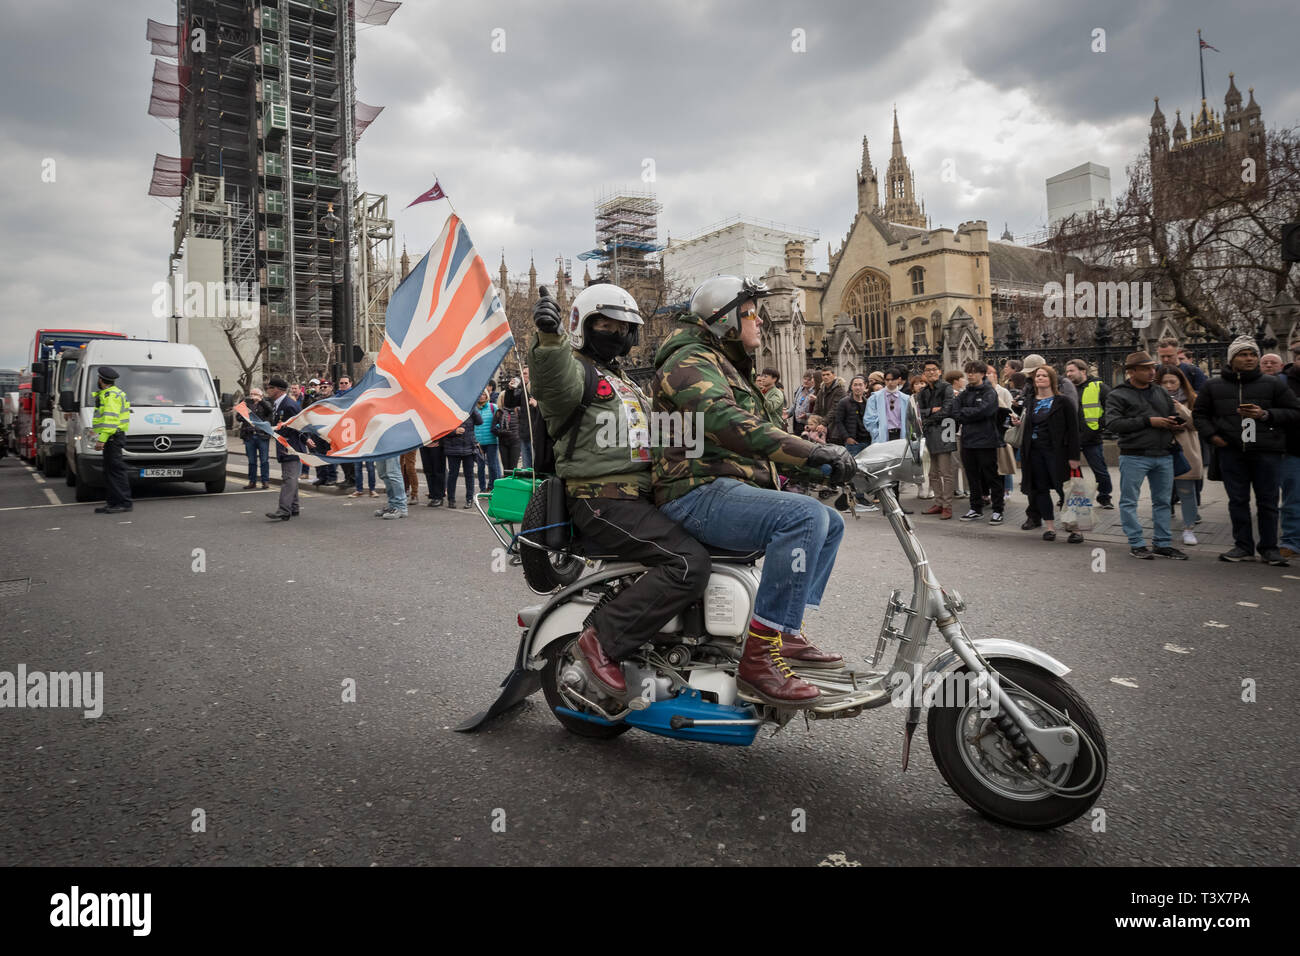 """London, UK. 12th April 2019. Rolling Thunder biker protest in Westminster. Thousands of bikers including army veterans and current members of serving forces ride through the city as part of a mass awareness protest to free """"Soldier F"""", who is currently facing charges from the Bloody Sunday shootings in Londonderry, Northern Ireland in 1972. Credit: Guy Corbishley/Alamy Live News - Stock Image"""